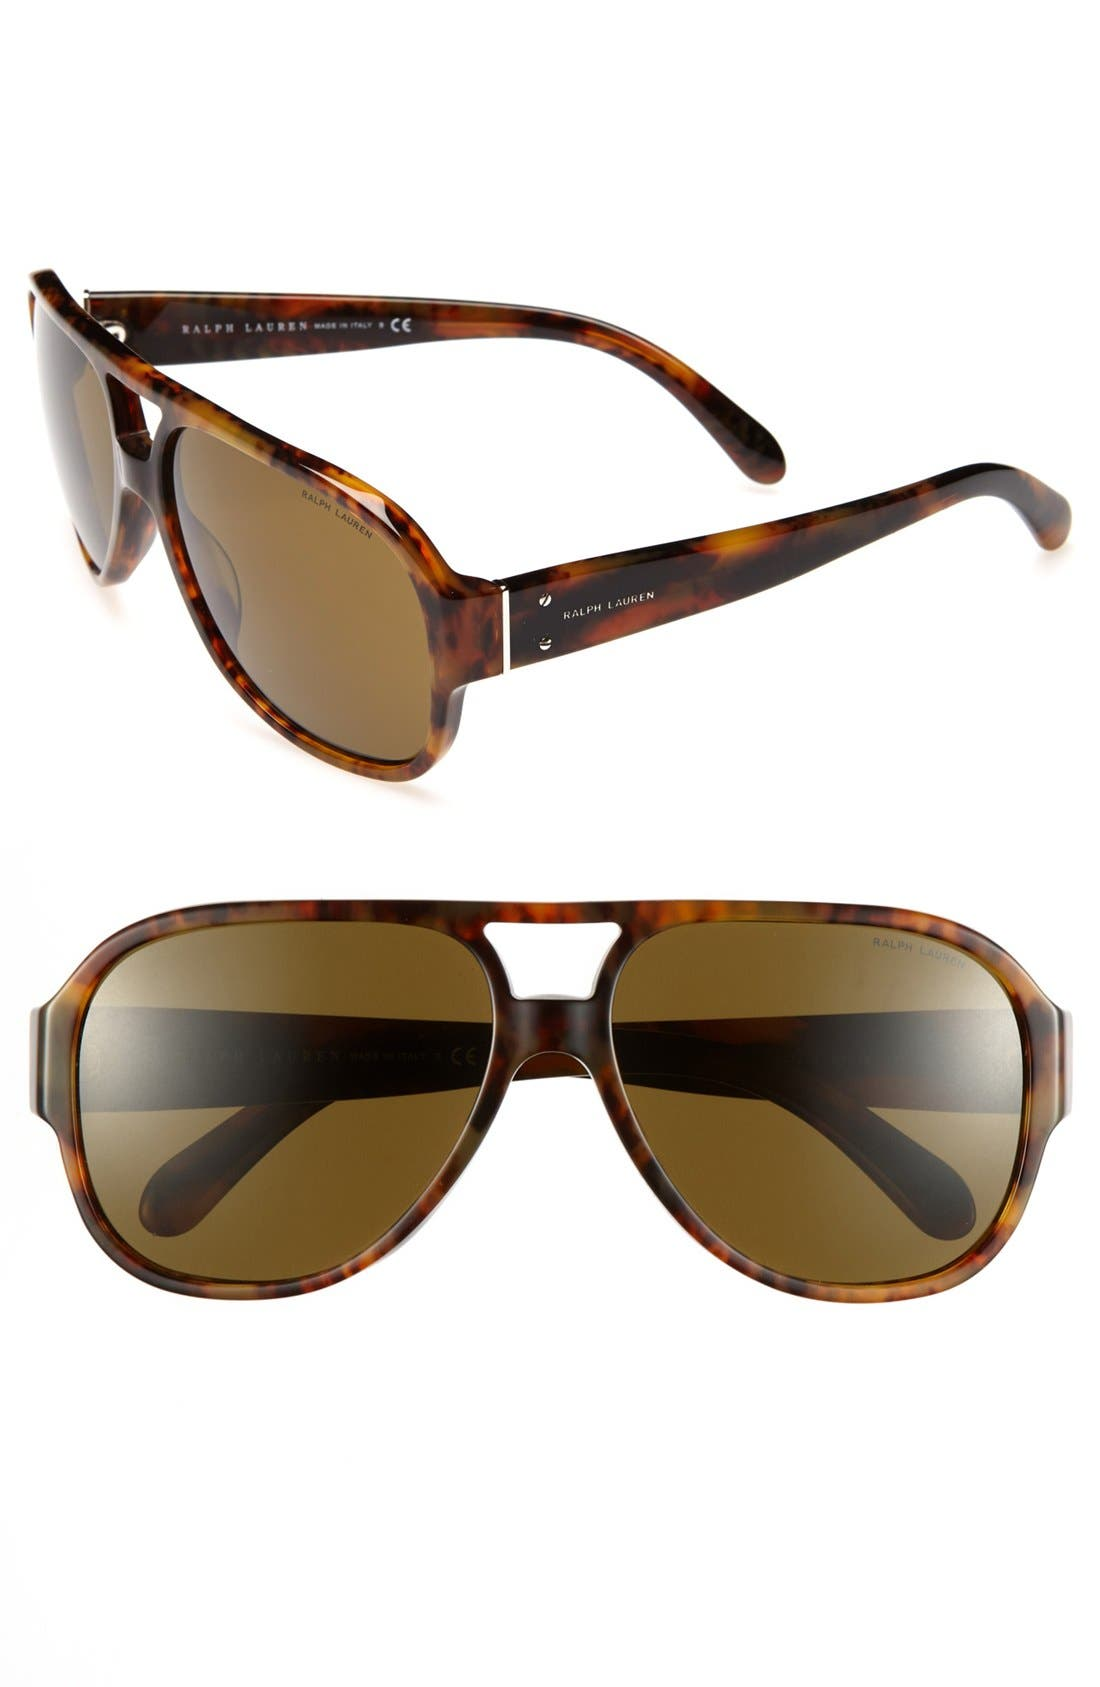 Main Image - Polo Ralph Lauren 61mm Aviator Sunglasses